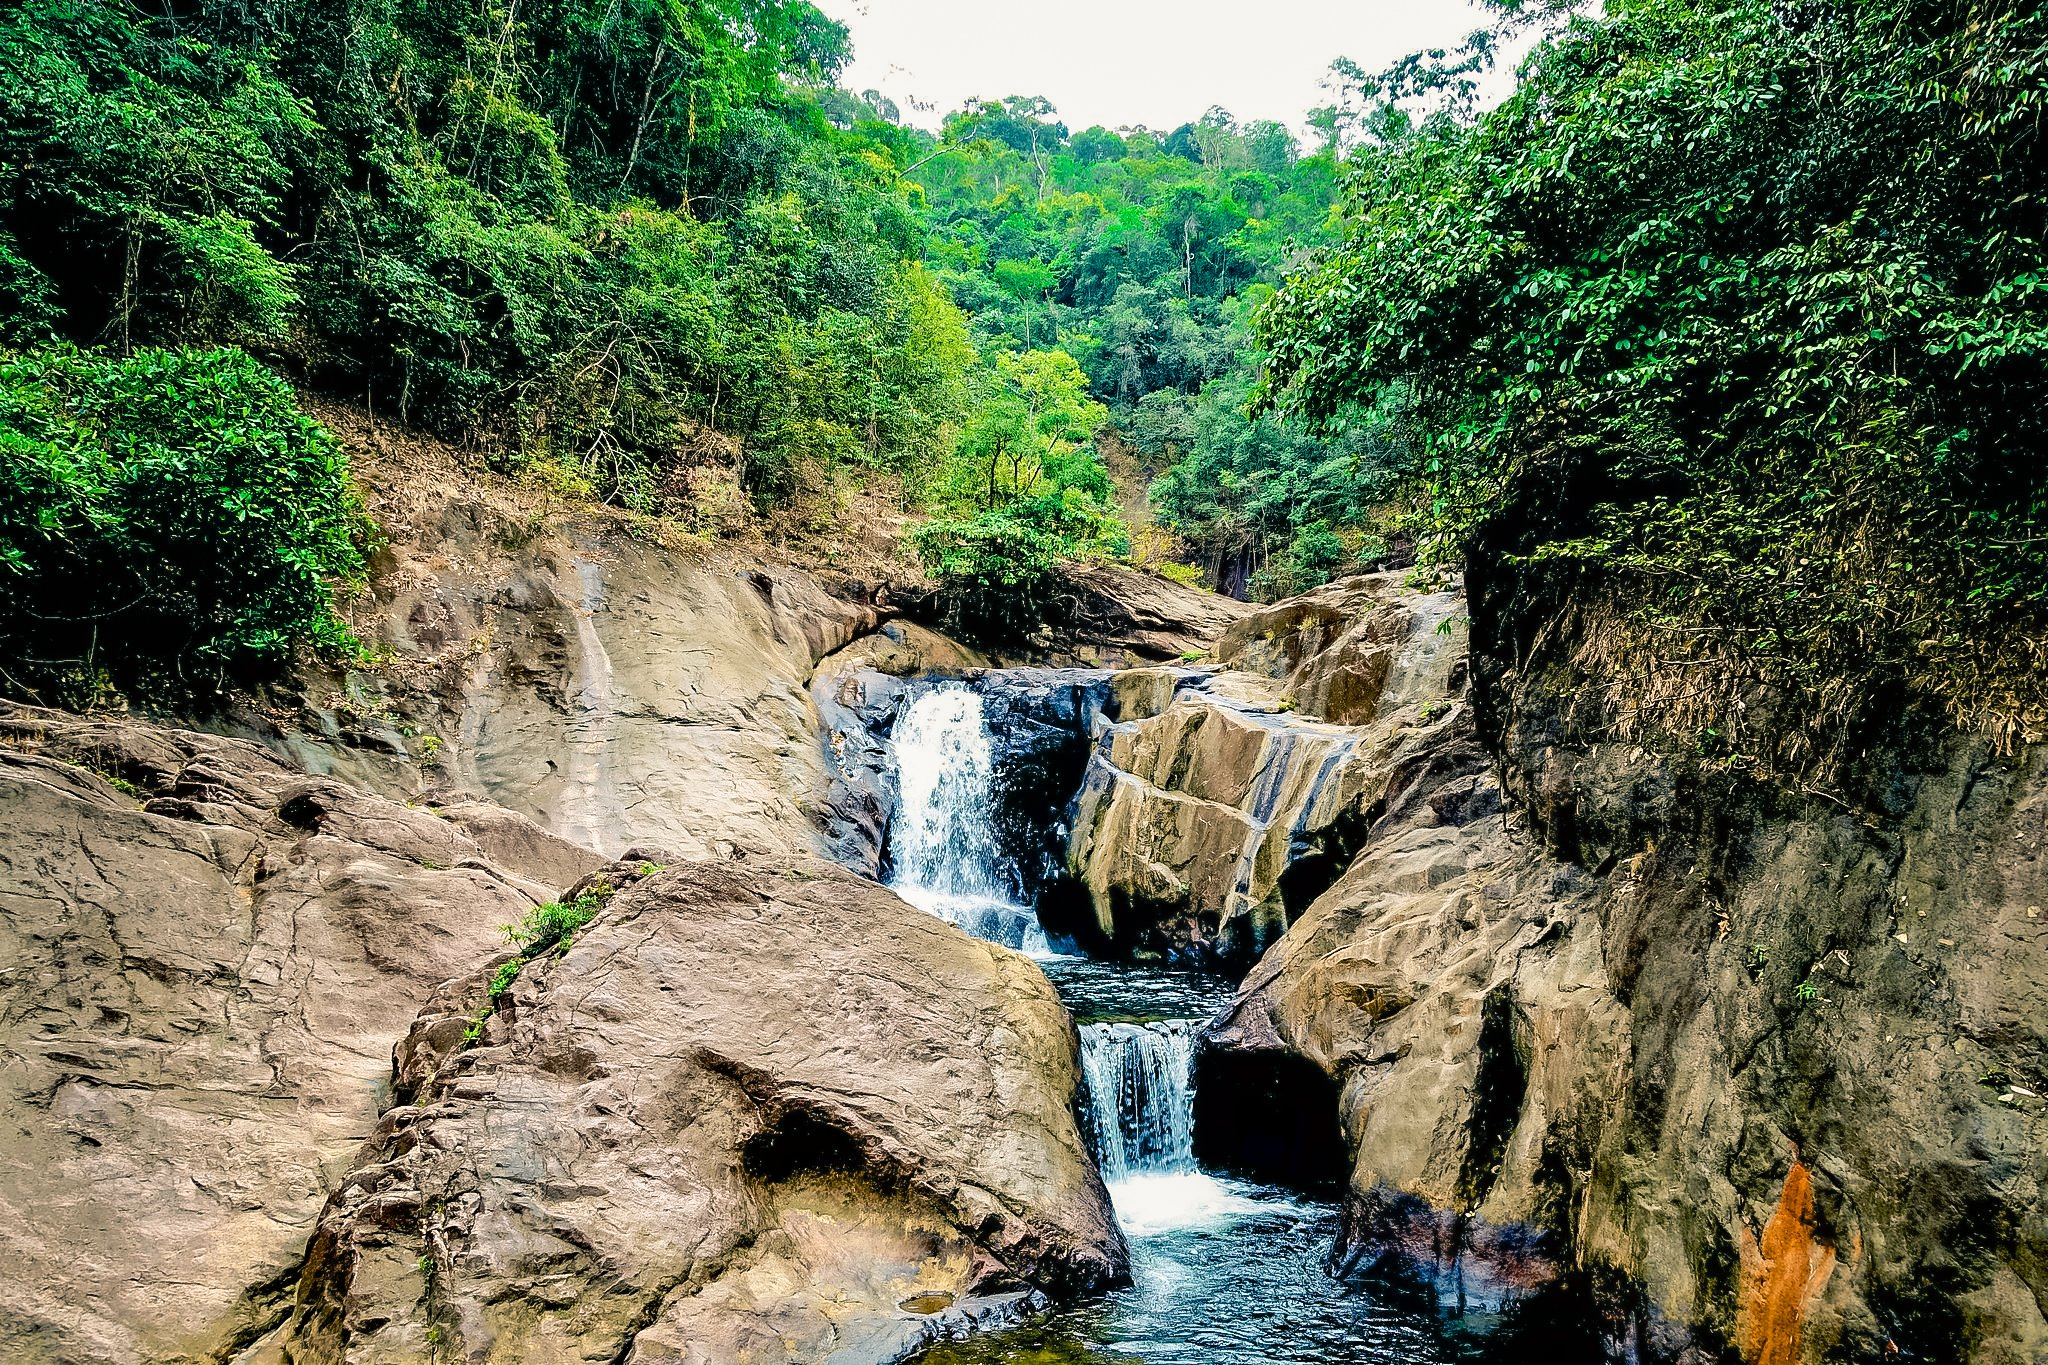 Than Mayom Waterfall is the most famous waterfall in Koh Chang.